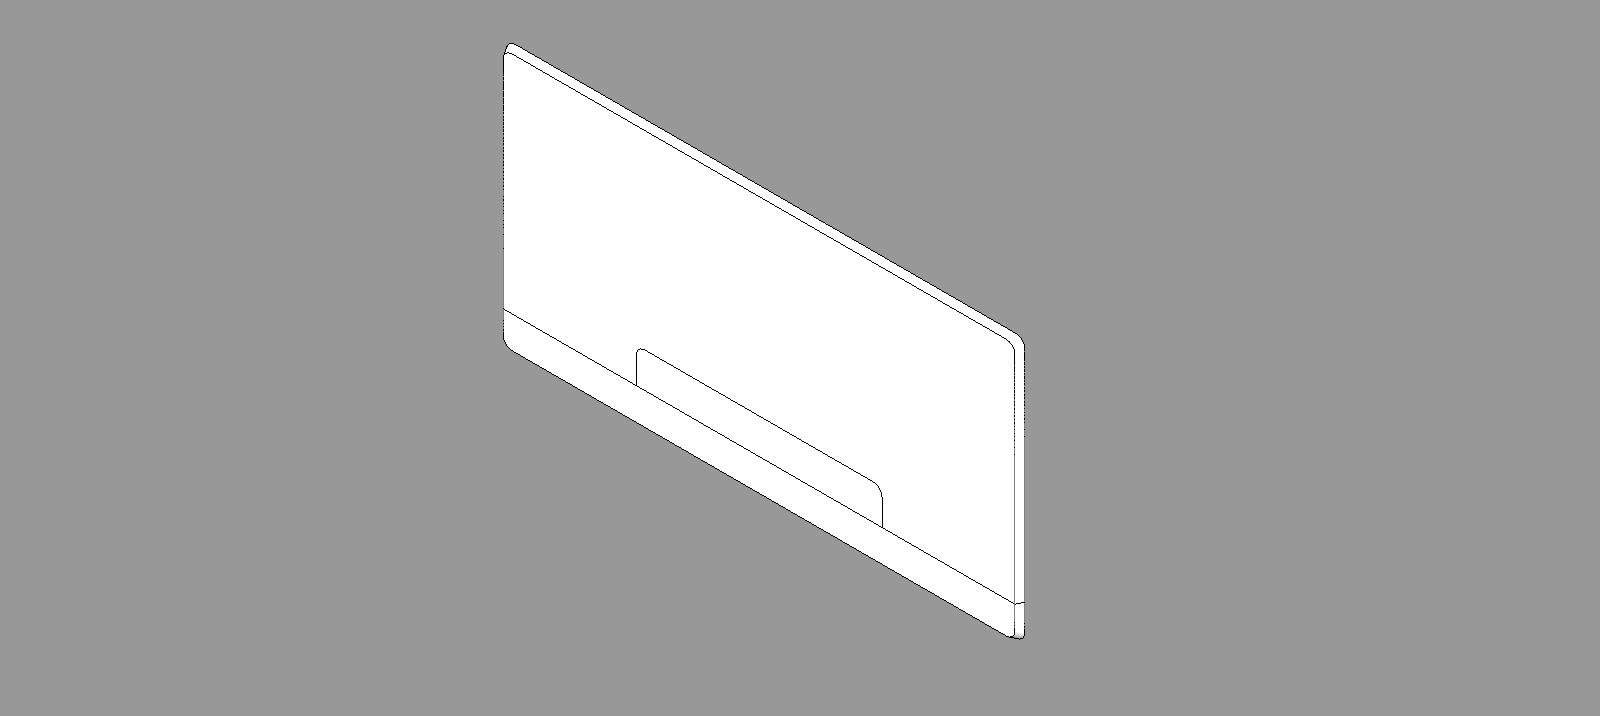 how to add device box in autocad electrical